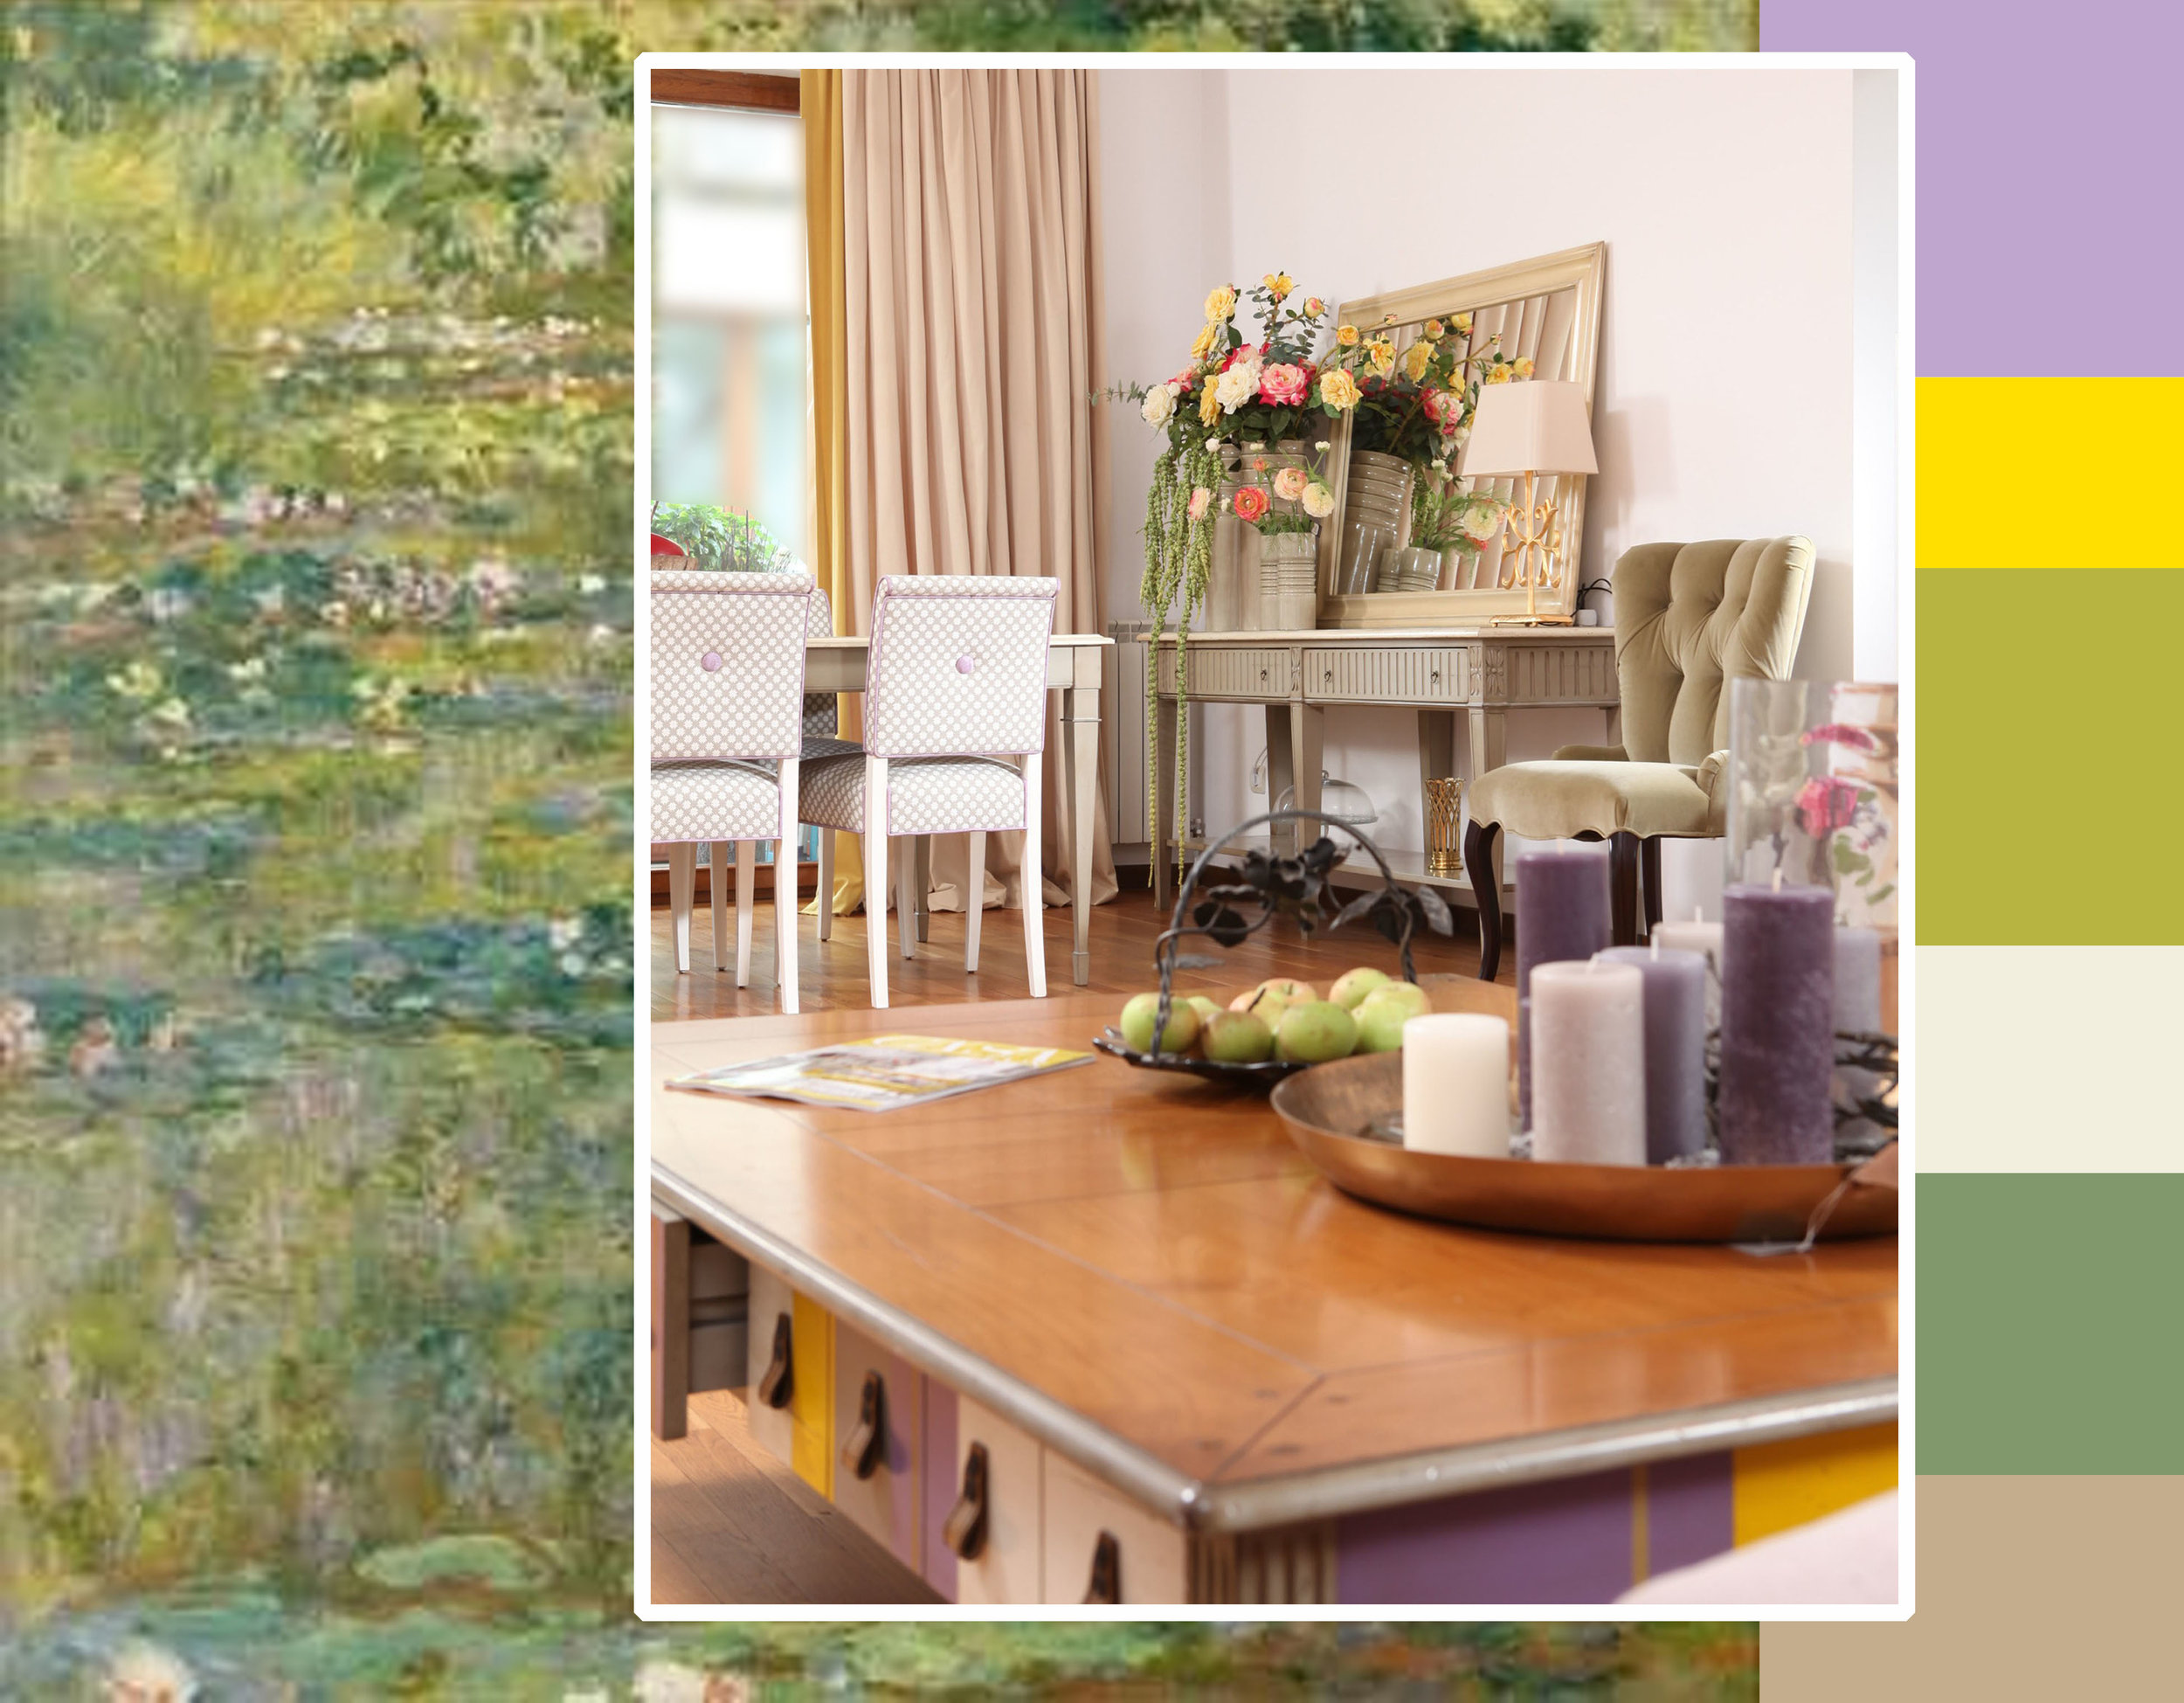 painting Water Llilies   Monet  -  interior project  Bucharest - image  Casa Lux